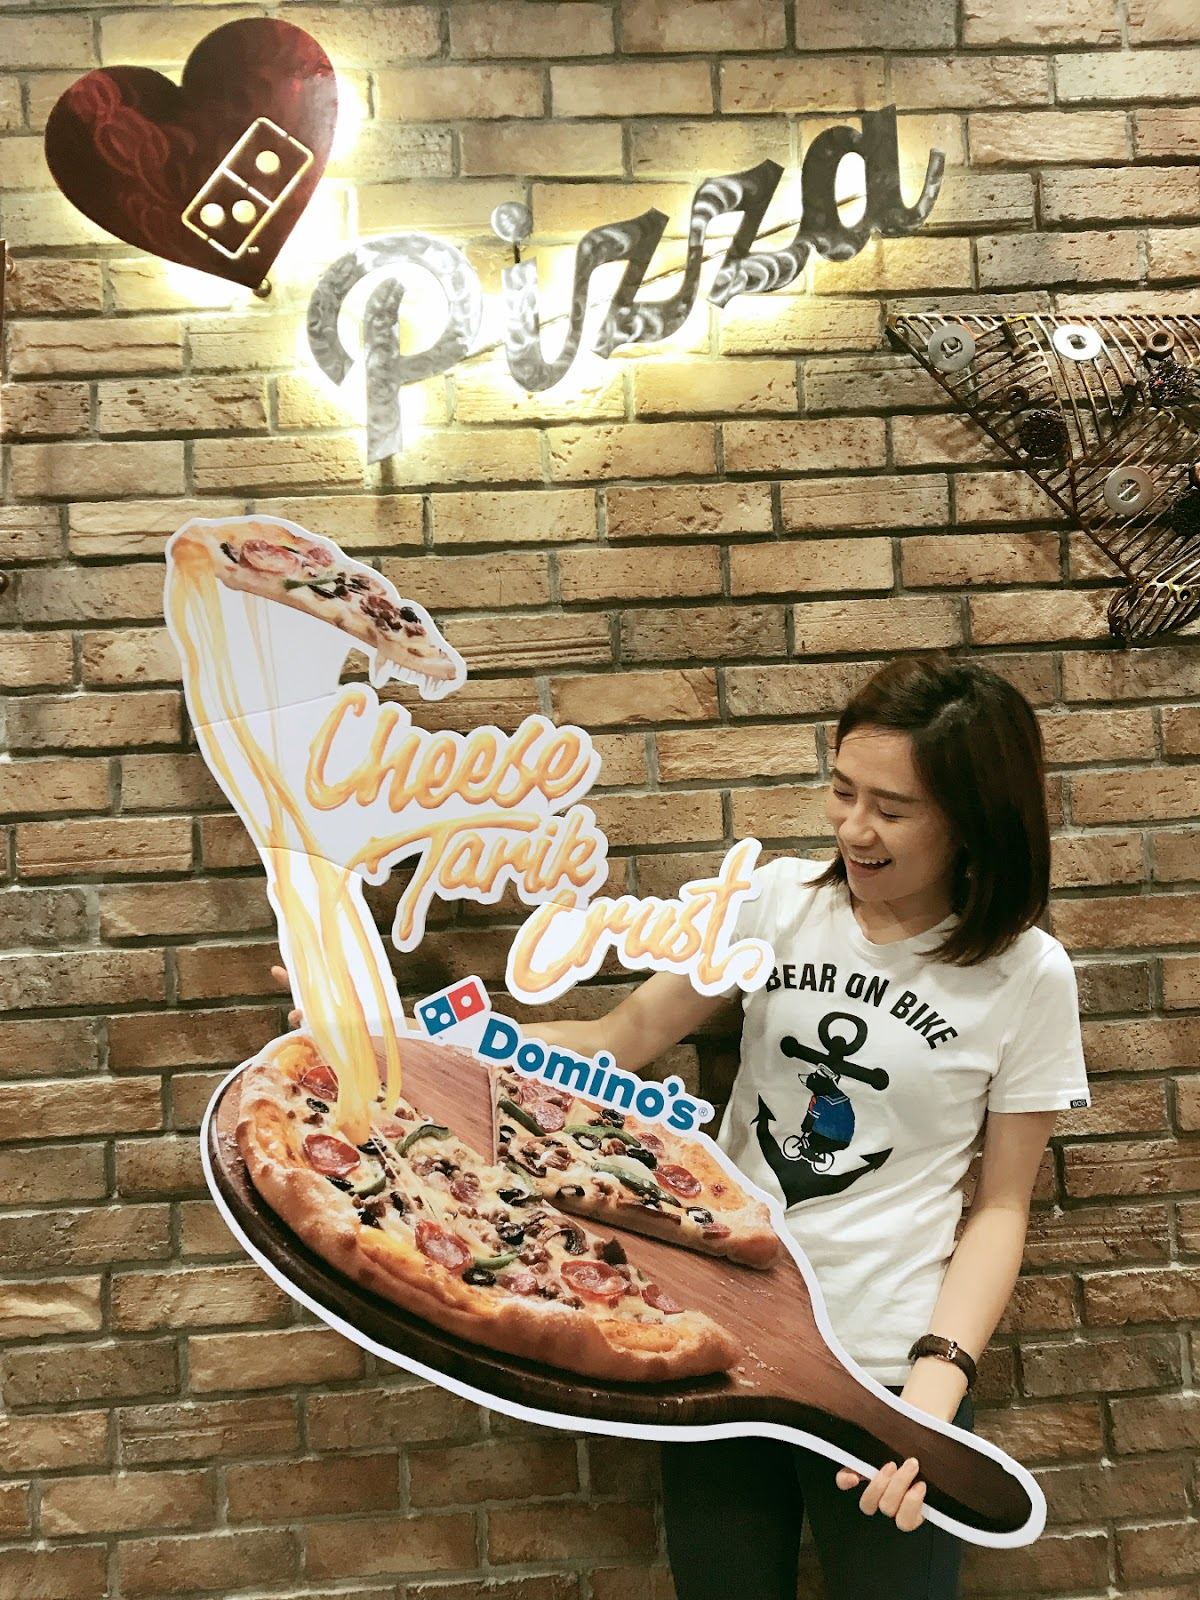 [Event] Tarilklah Puas-puas With The New Domino's Cheese Tarik Crust!